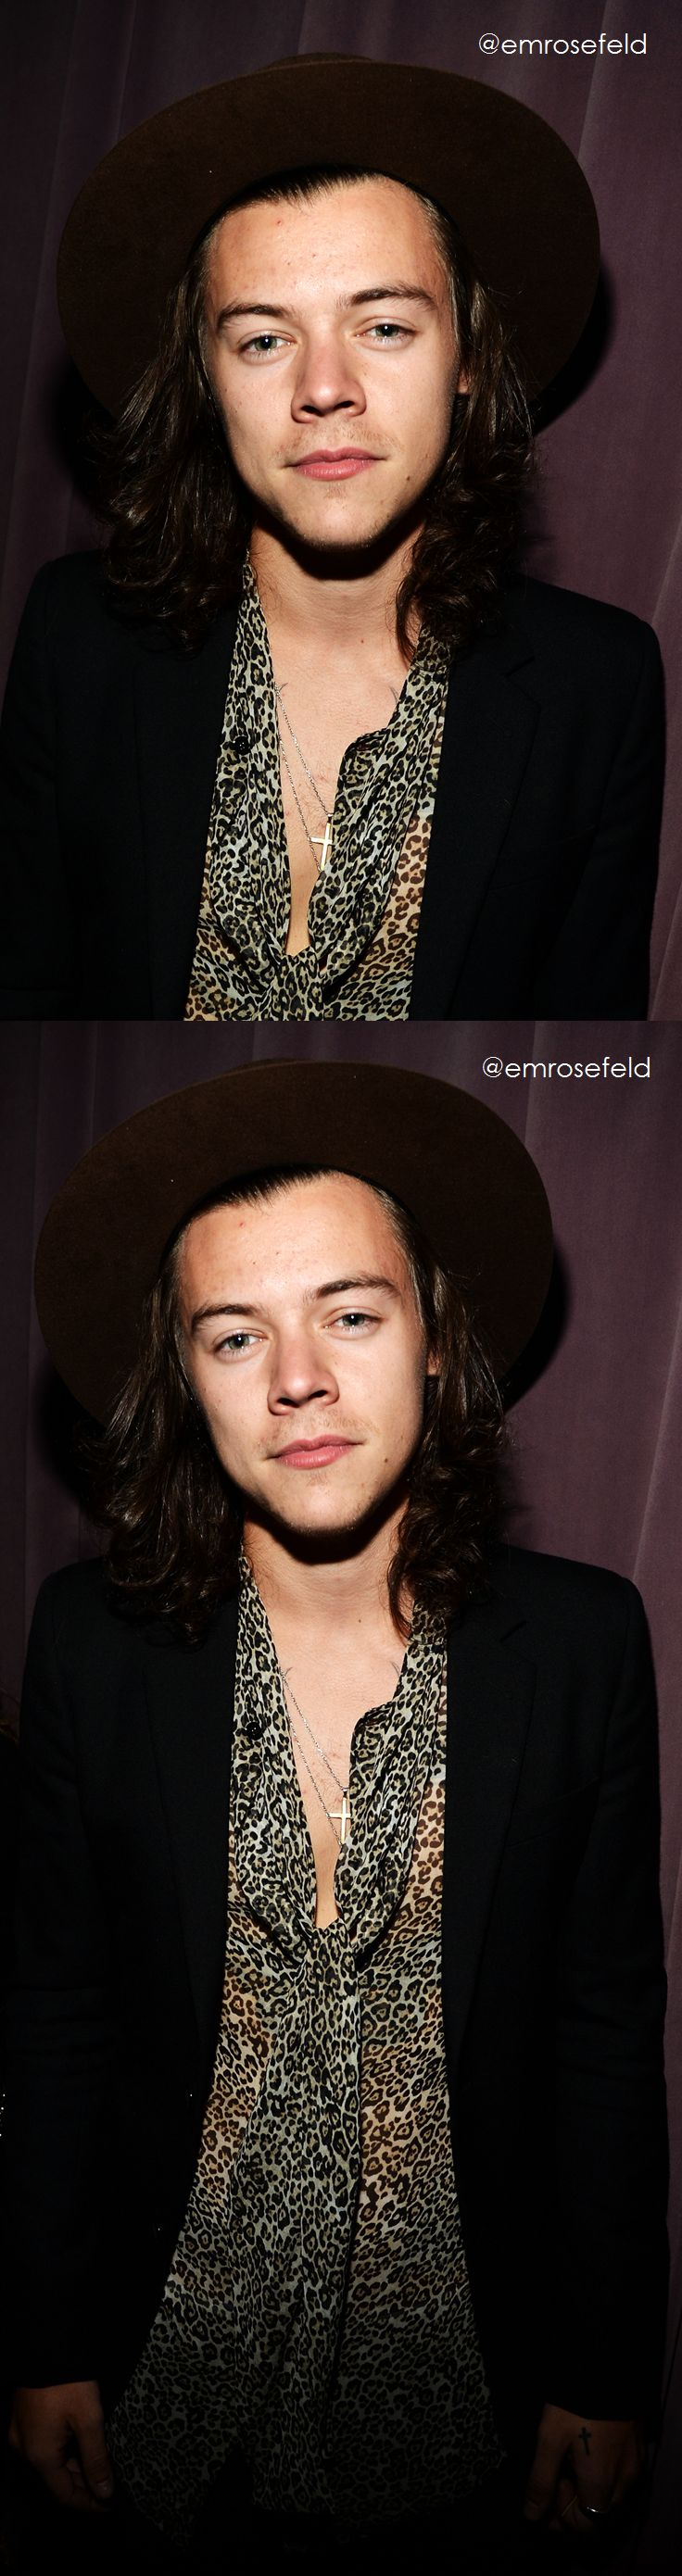 Harry Styles | at The Rolling Stones Los Angeles Club Show at The Fonda Theatre 5.20.15 | @emrosefeld |